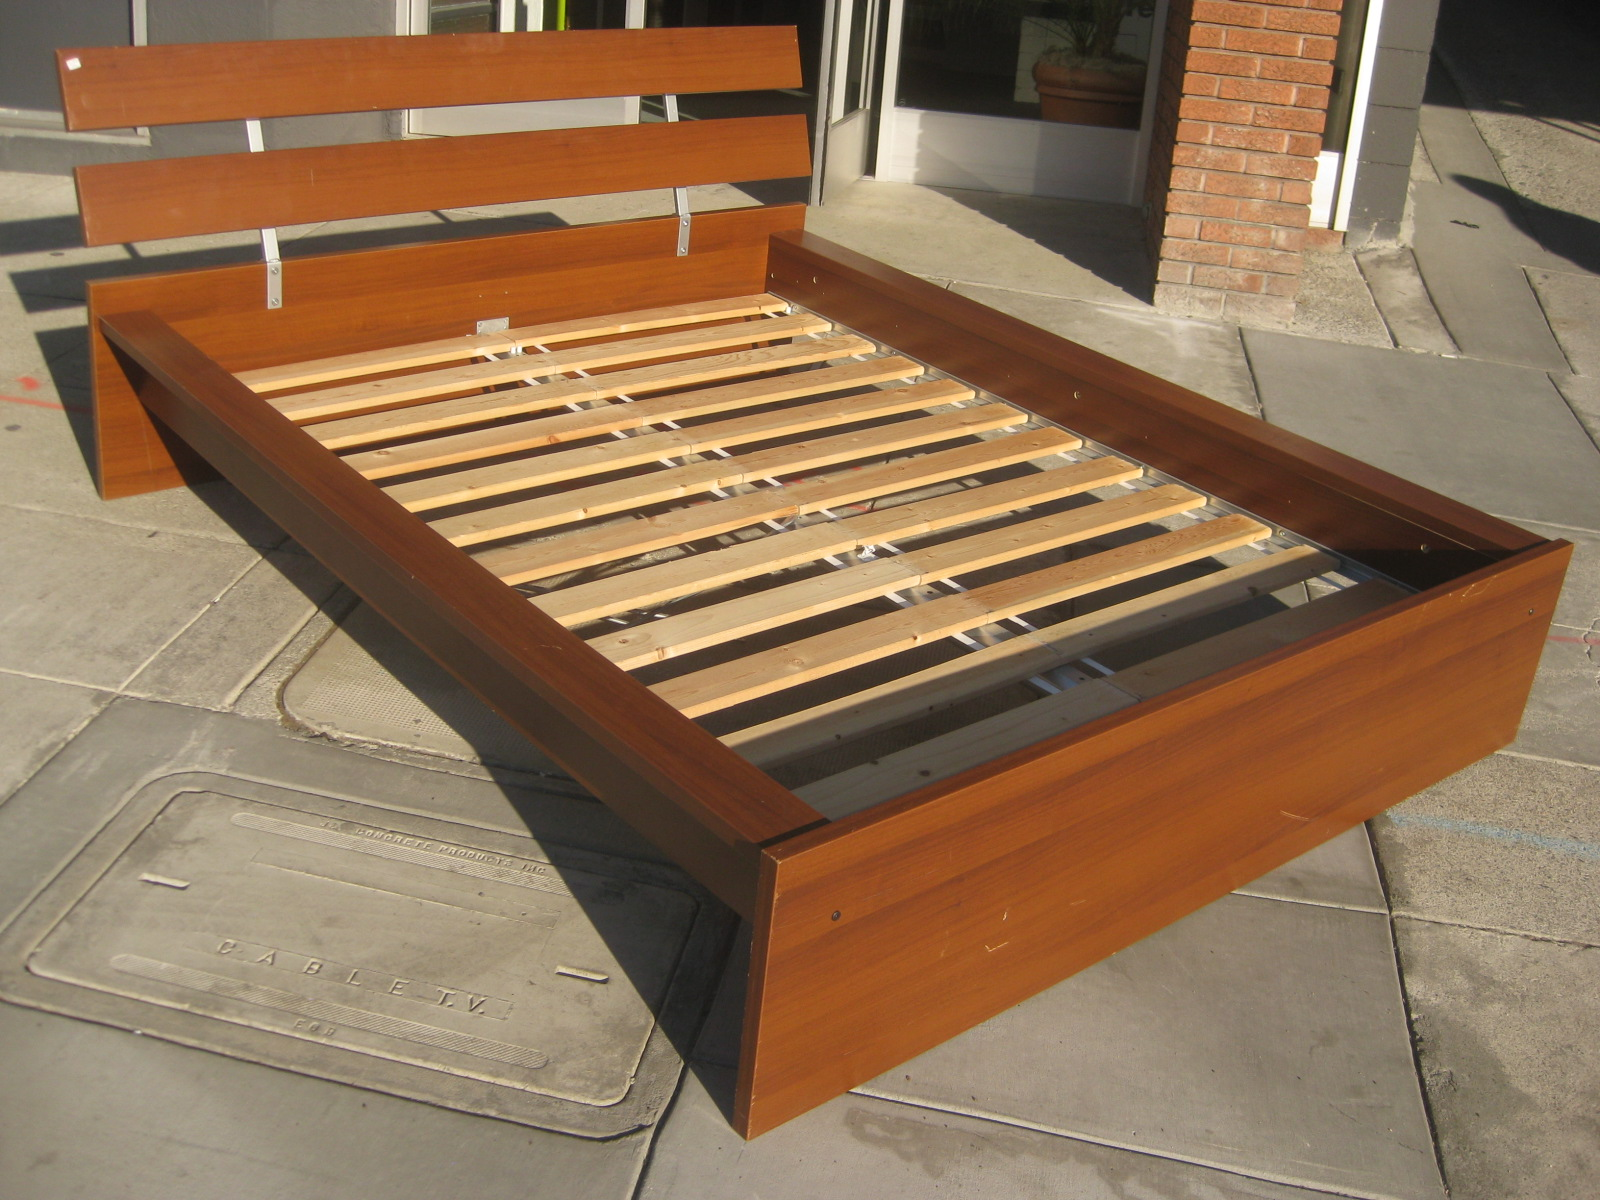 UHURU FURNITURE & COLLECTIBLES: SOLD - Queen Platform Bed - $125